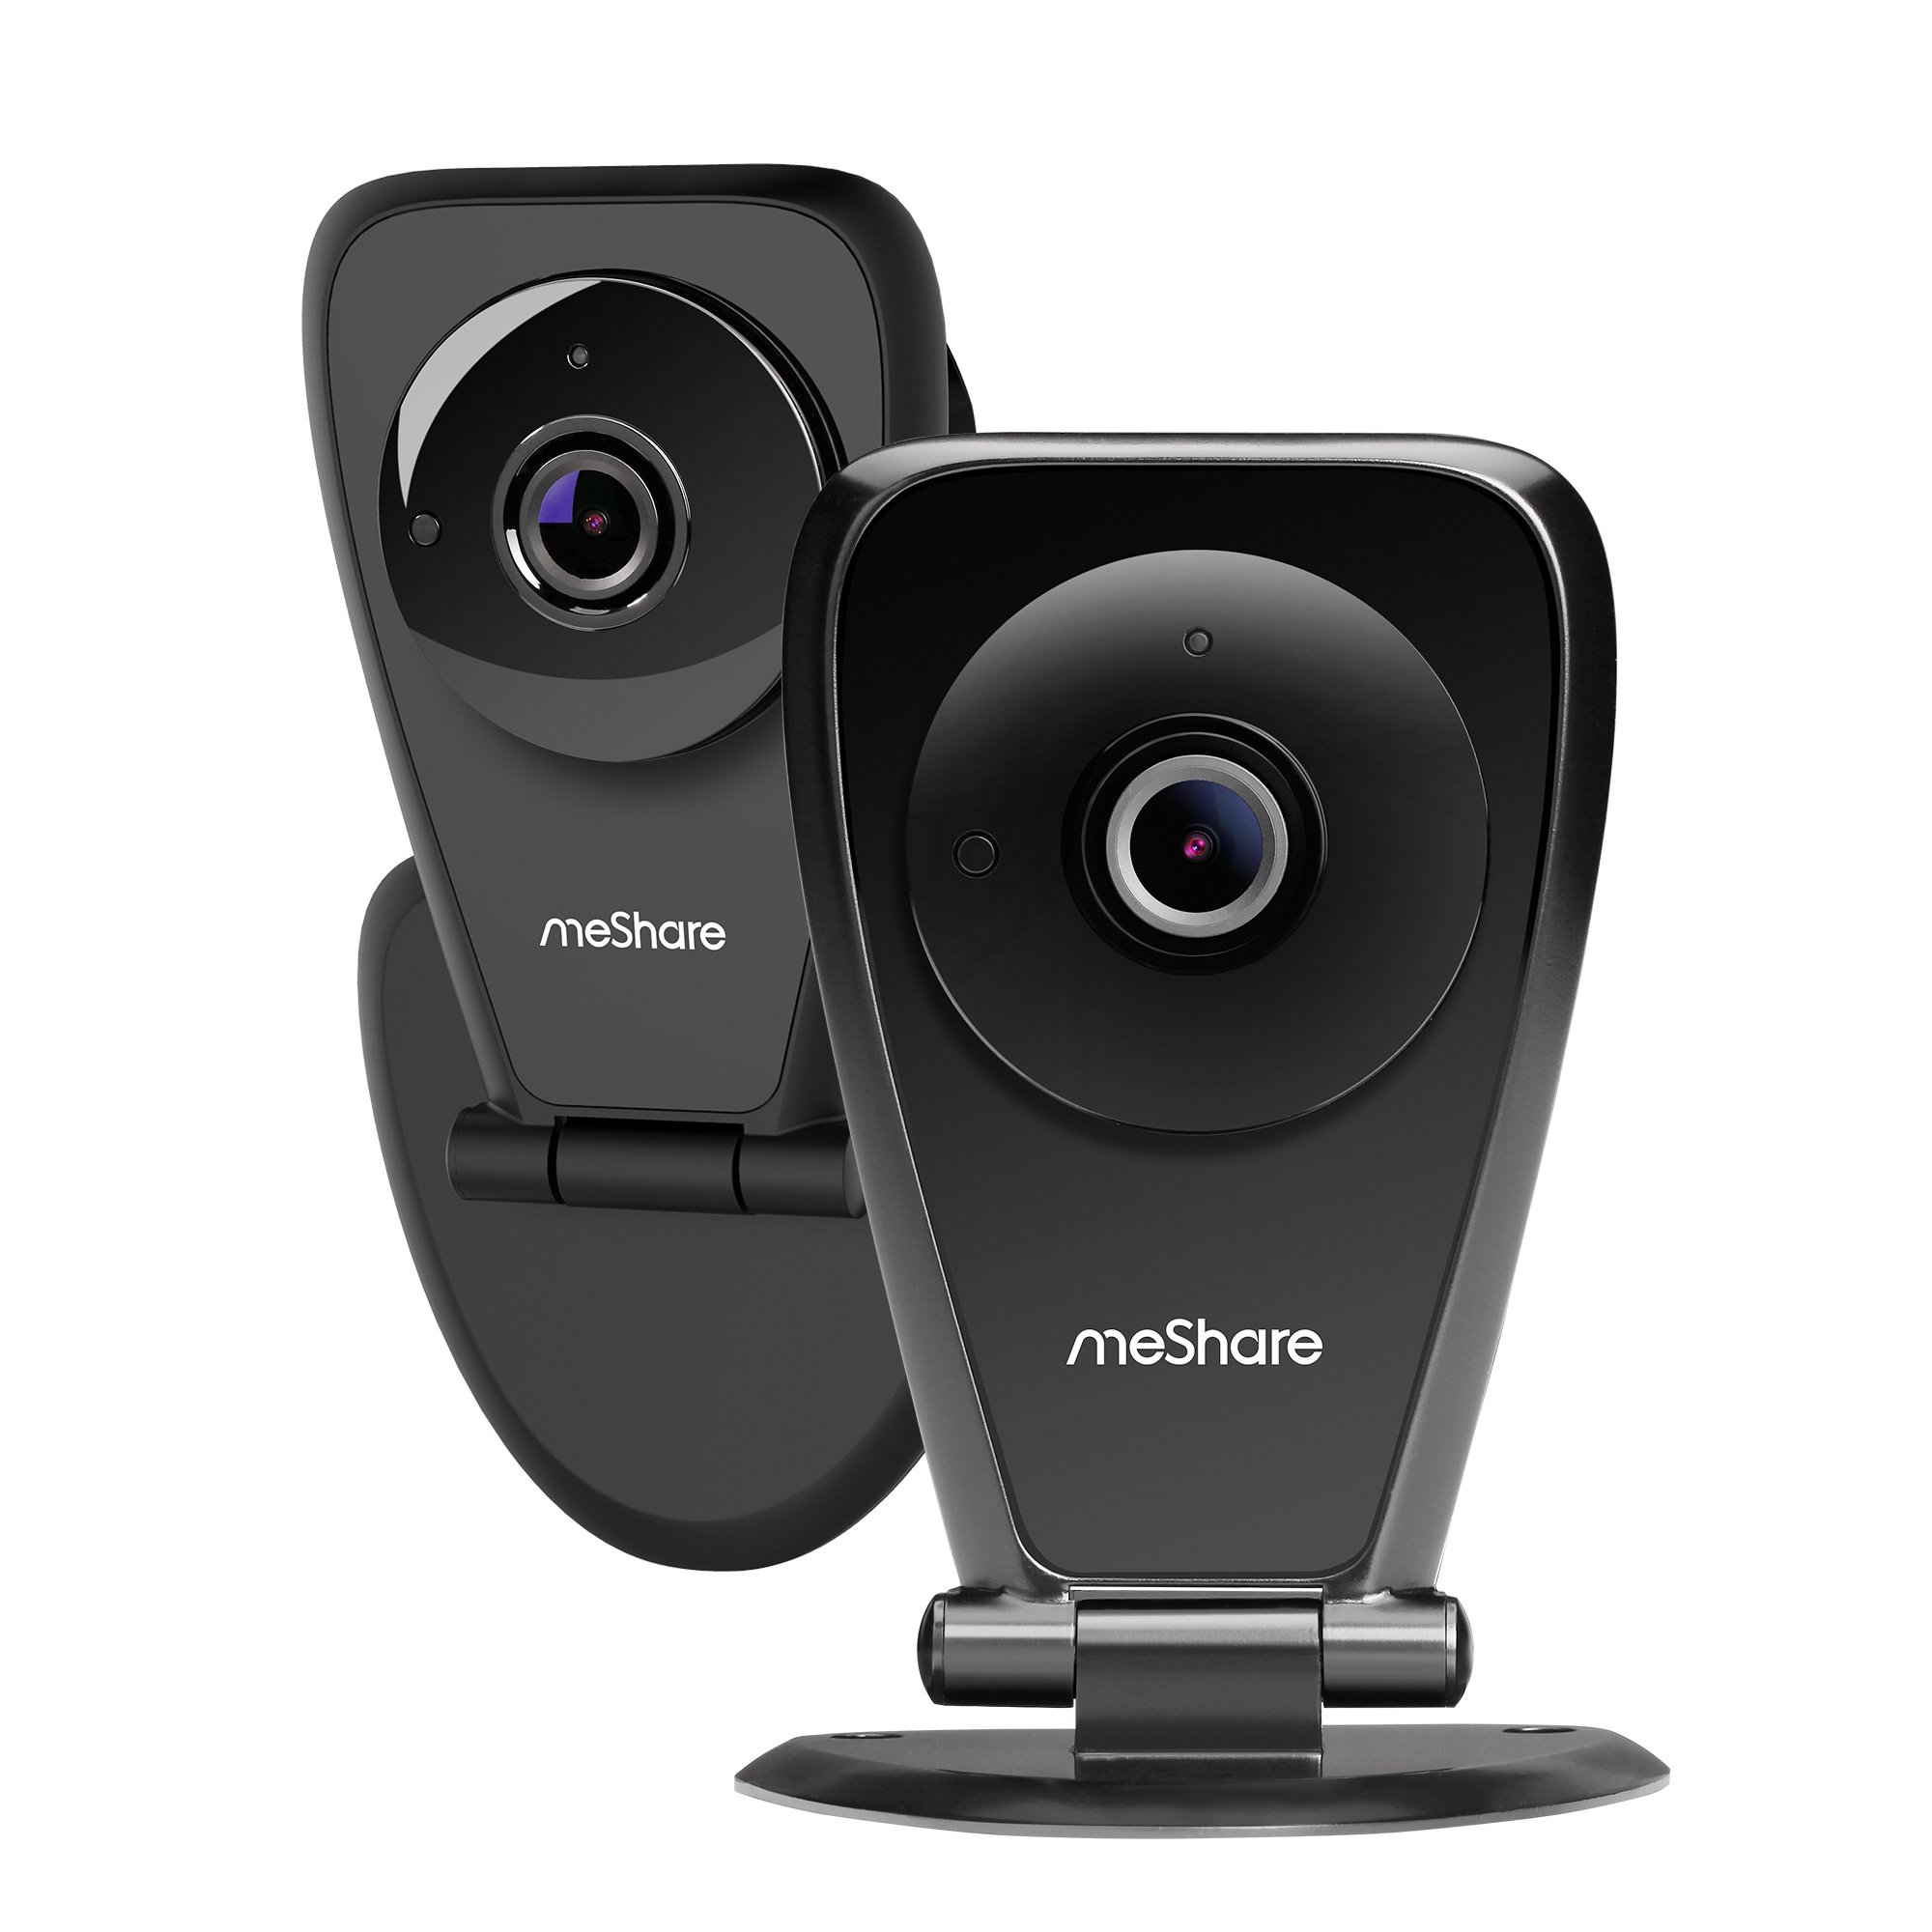 meShare Security Camera 1080p - 2 Pack Home Camera Indoor Wireless Cloud Cam System with Night Vision, Motion Detection, and Two Way Audio, Works with Alexa 【Free 6-Month Cloud Service】